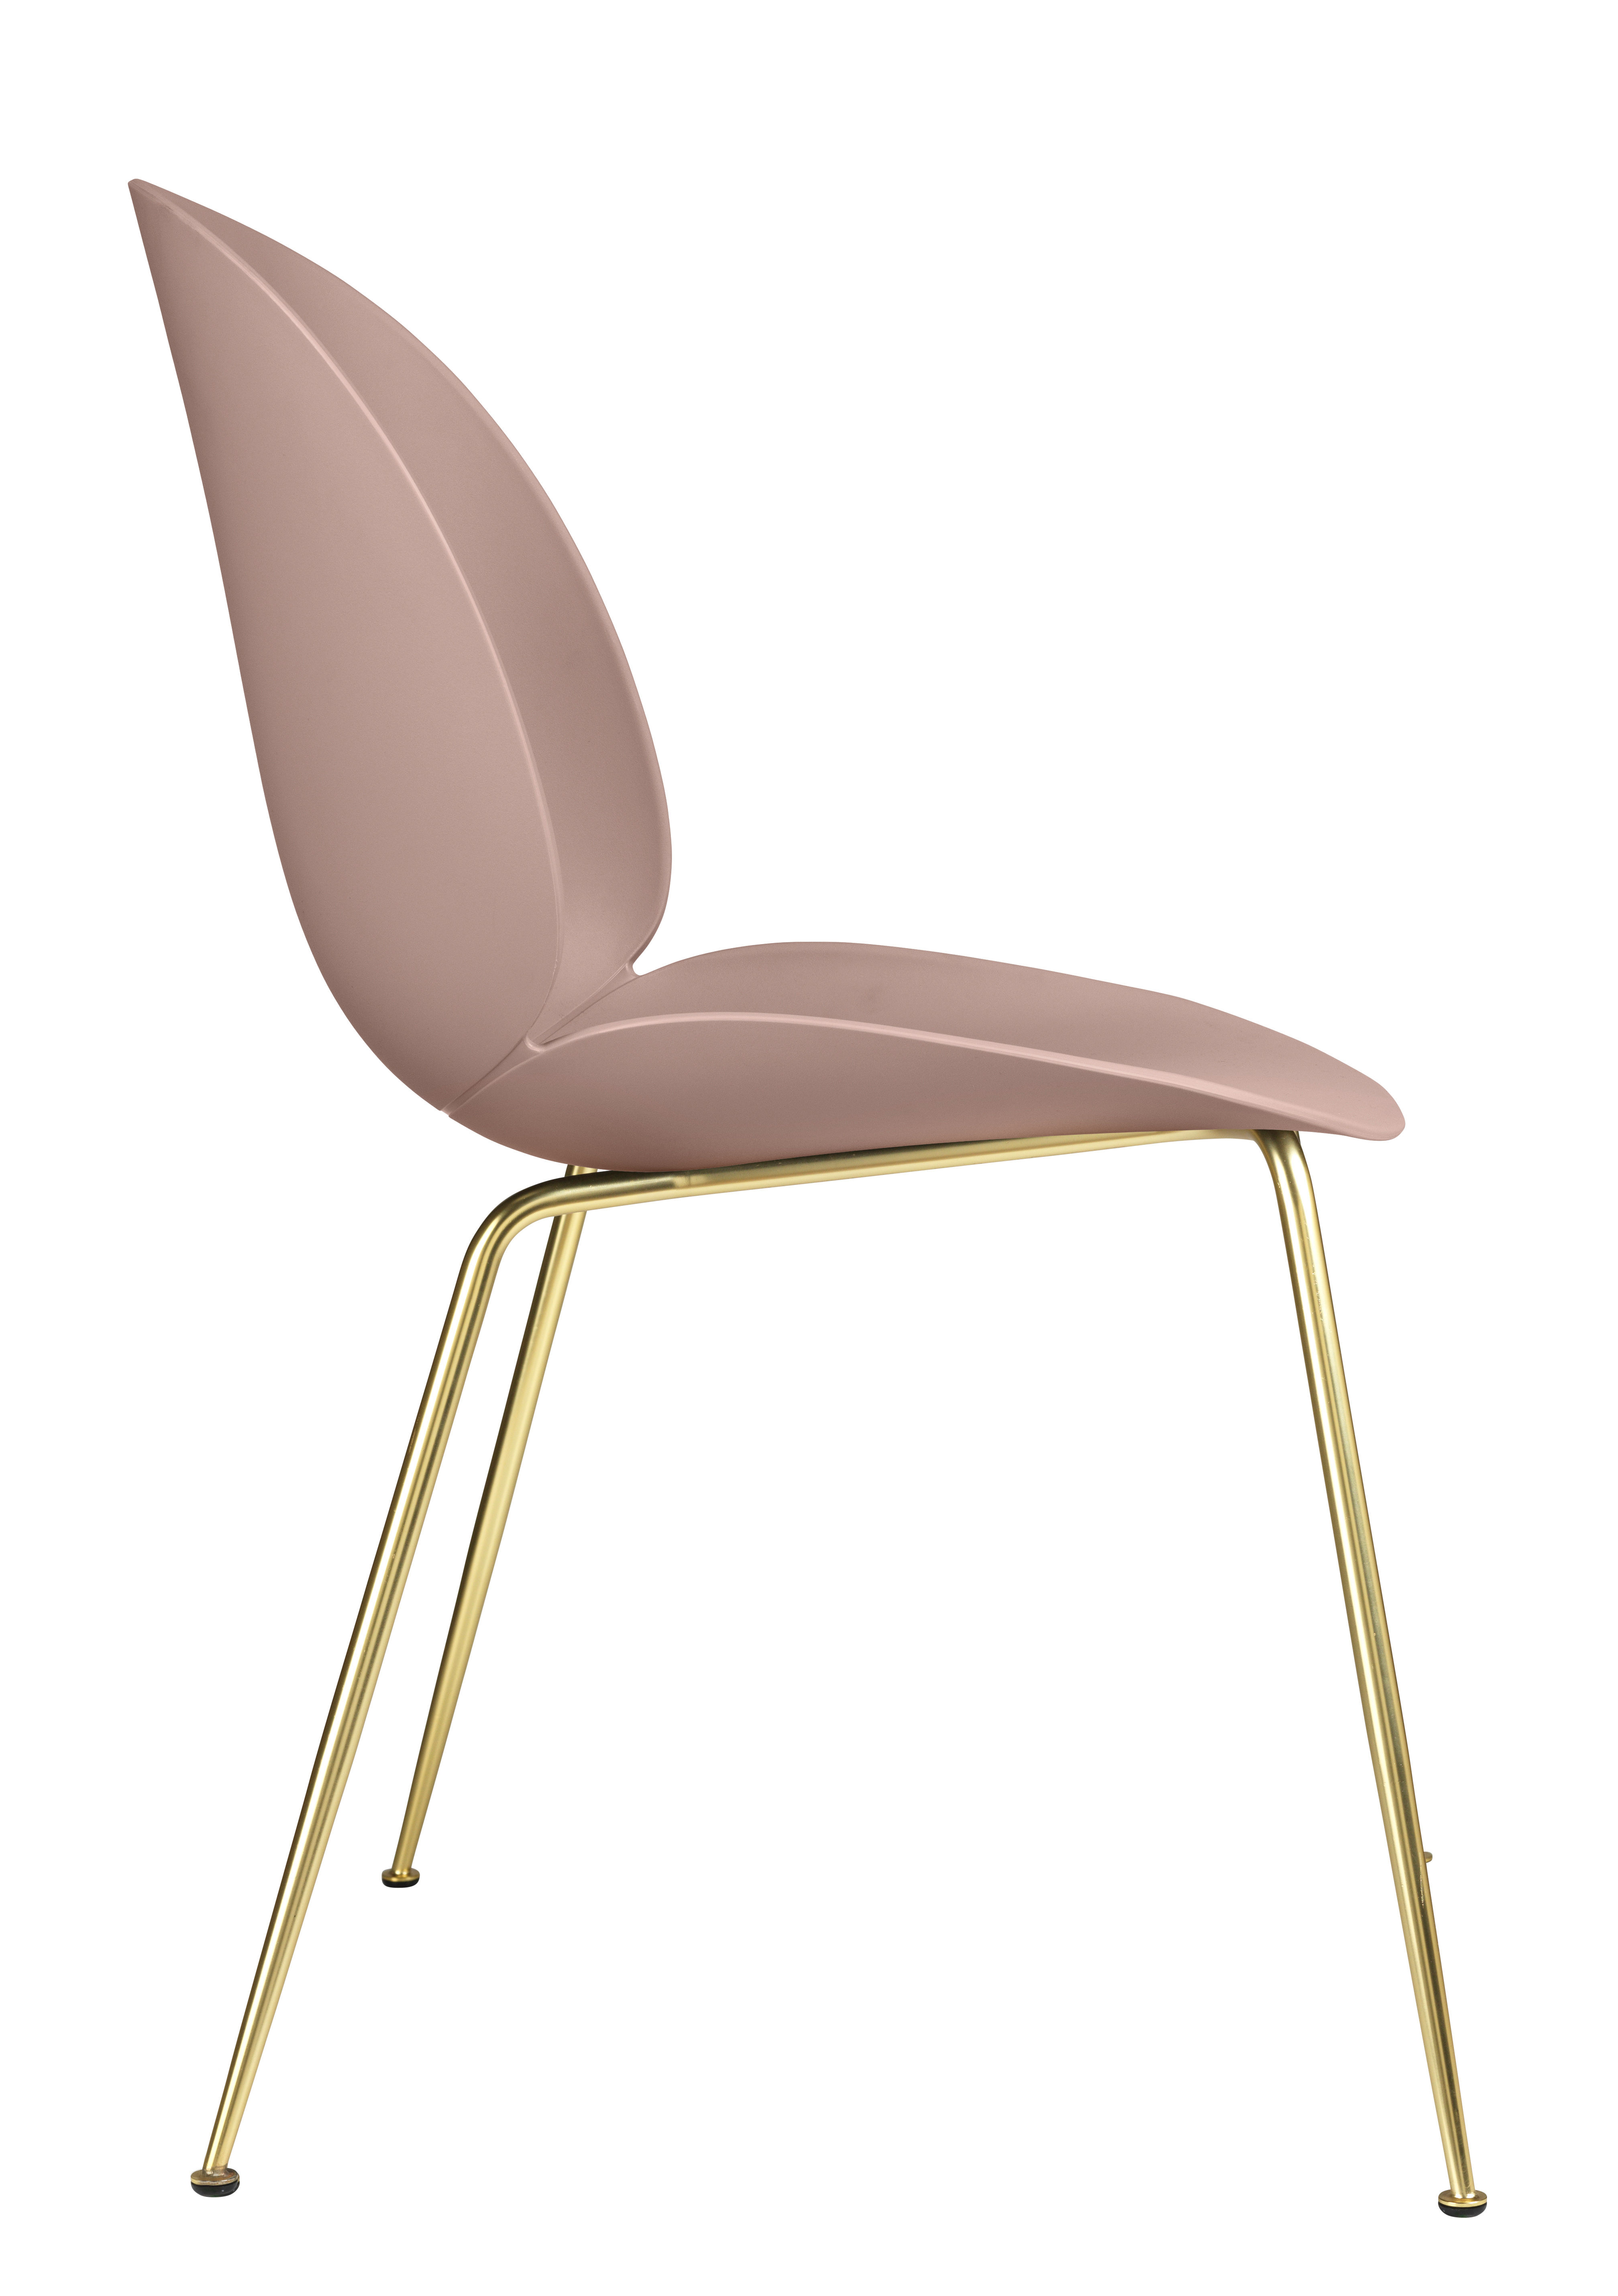 Chaise beetle gubi rose pieds laiton l 56 x h 87 made in design for Chaise 3 pieds